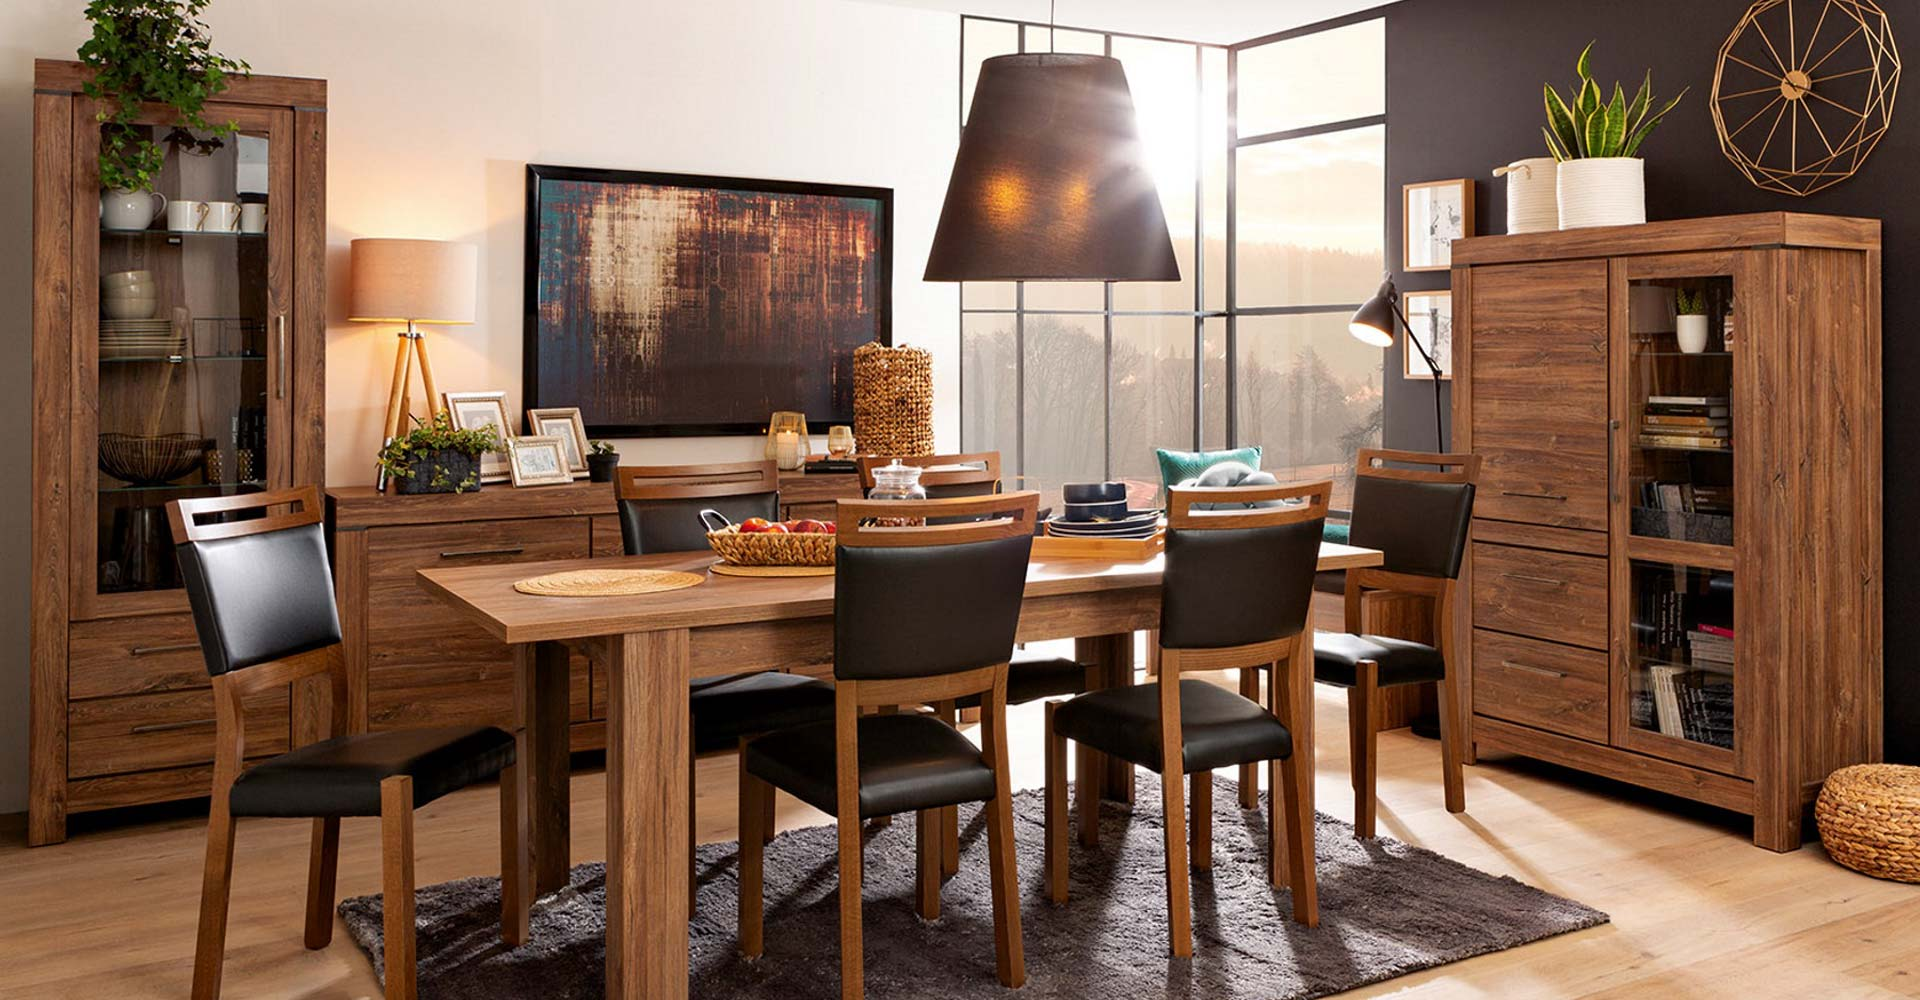 How to arrange furniture in an open concept? - get inspired by Smart Furniture online store